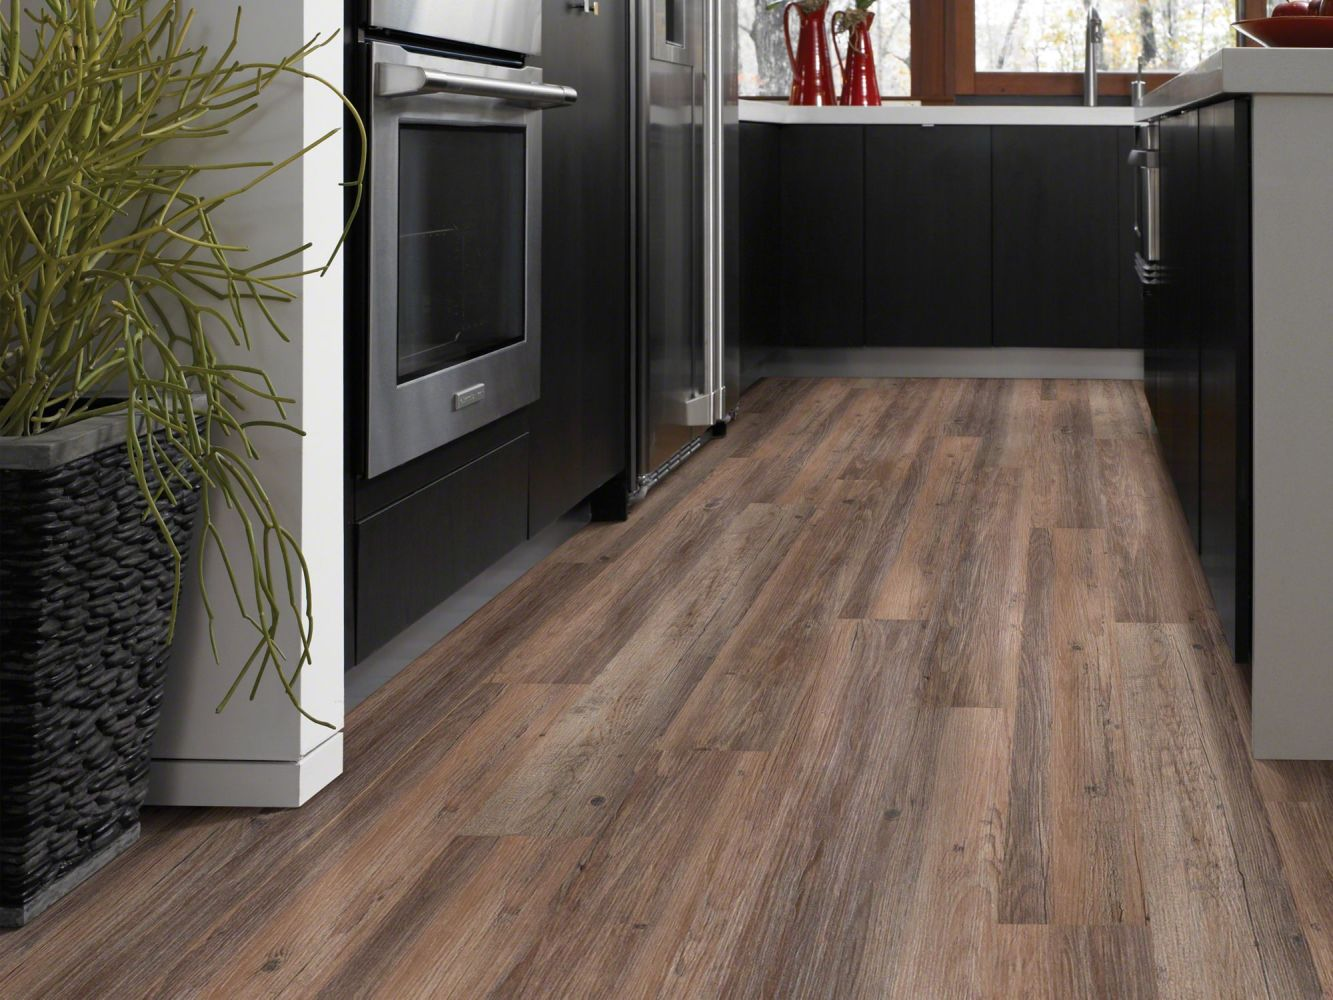 Shaw Floors Resilient Property Solutions Market Square 6 Breckenridge 00722_VPS23